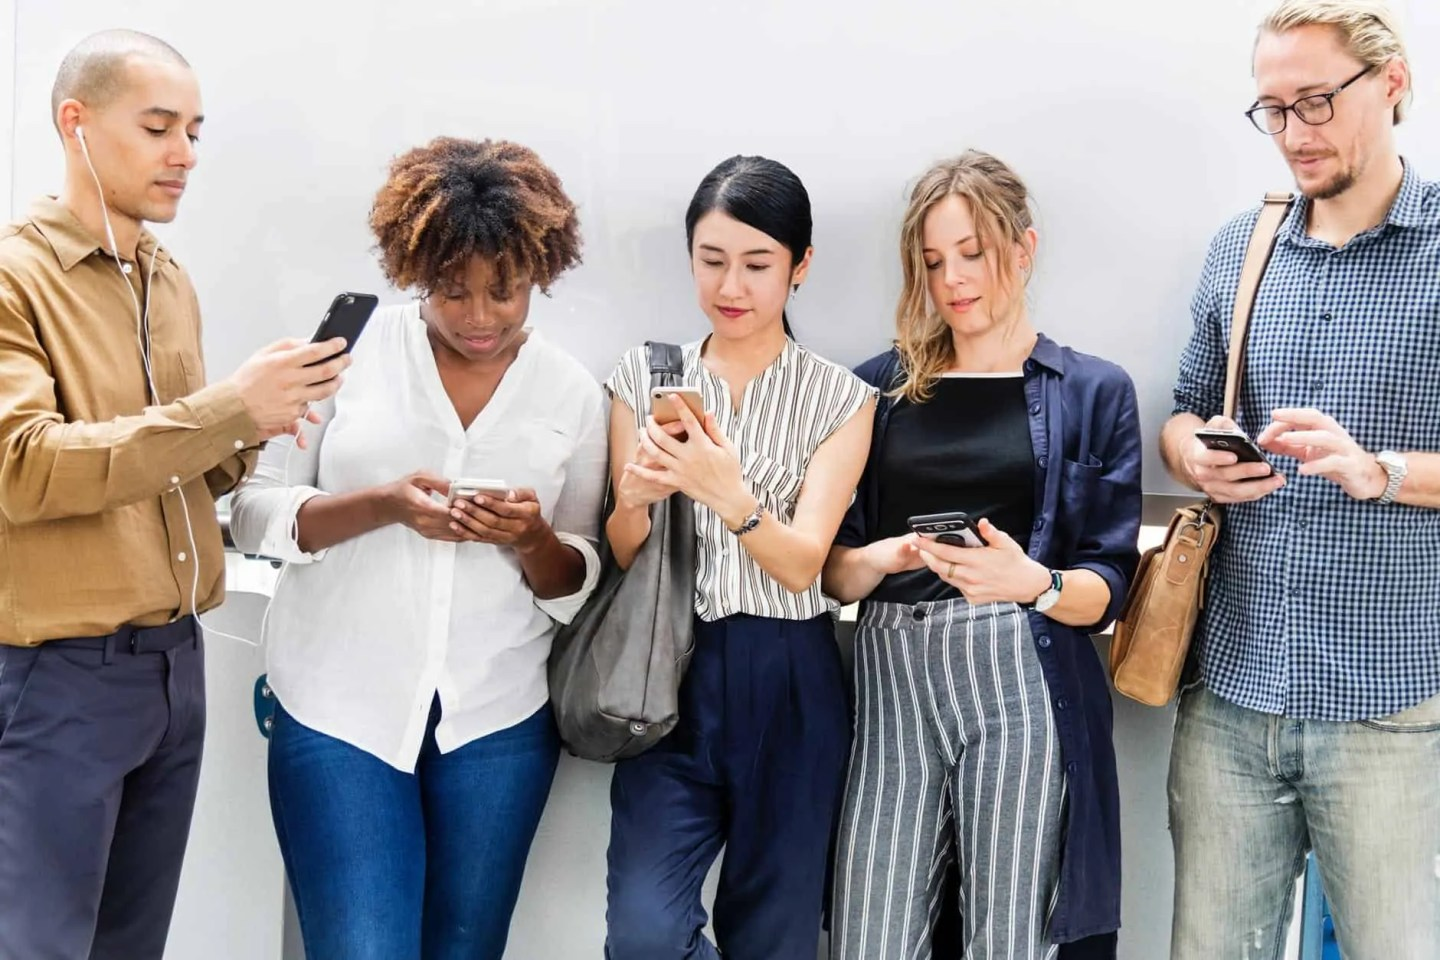 Discover how a digital detox can help you reconnect with friends and family